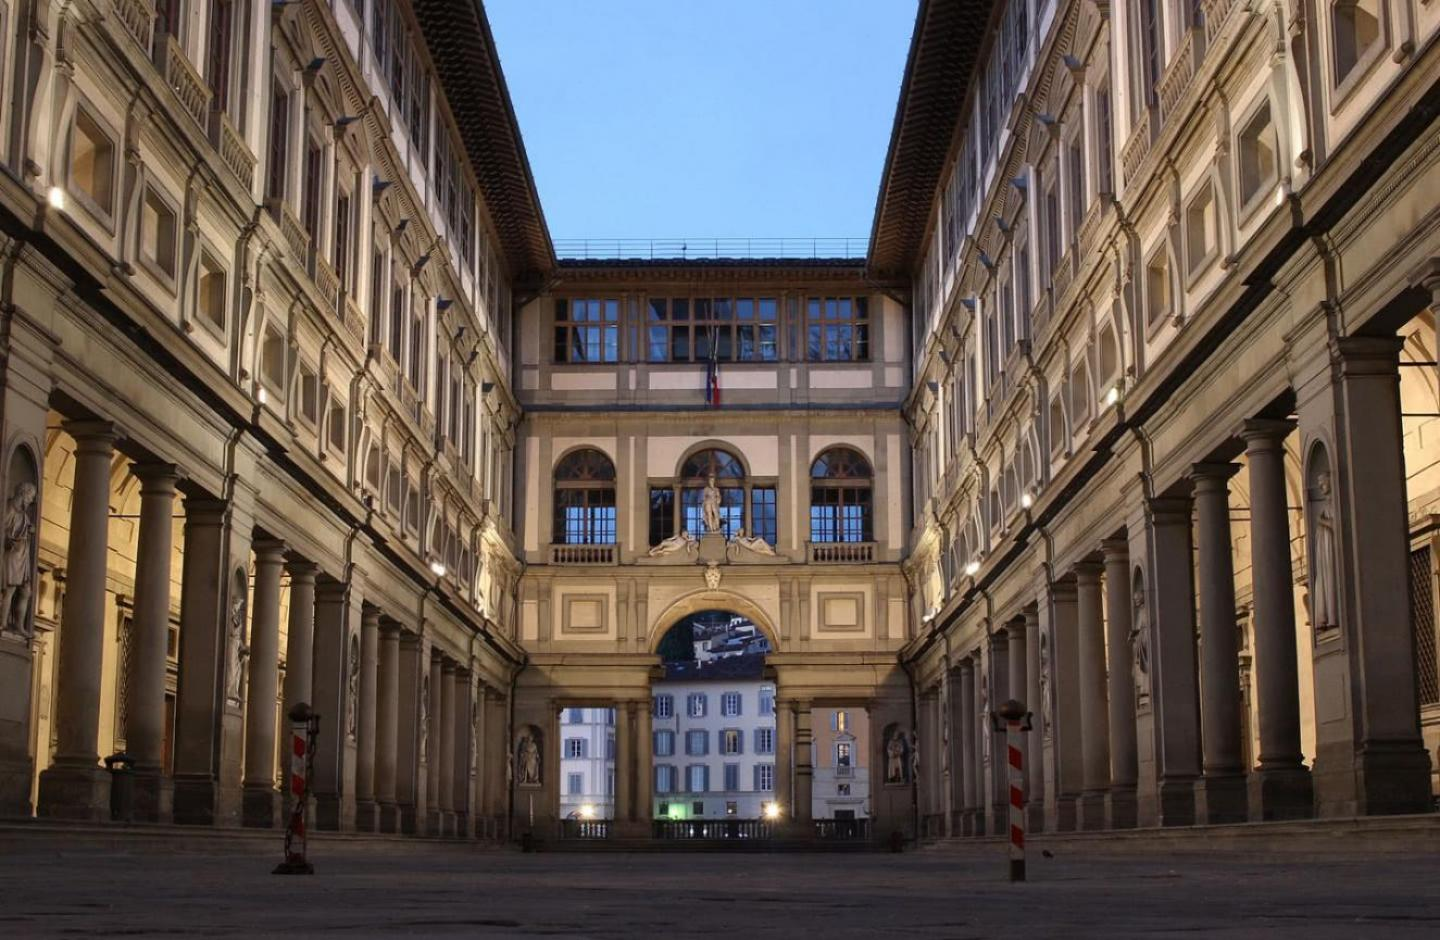 Uffizi all year long